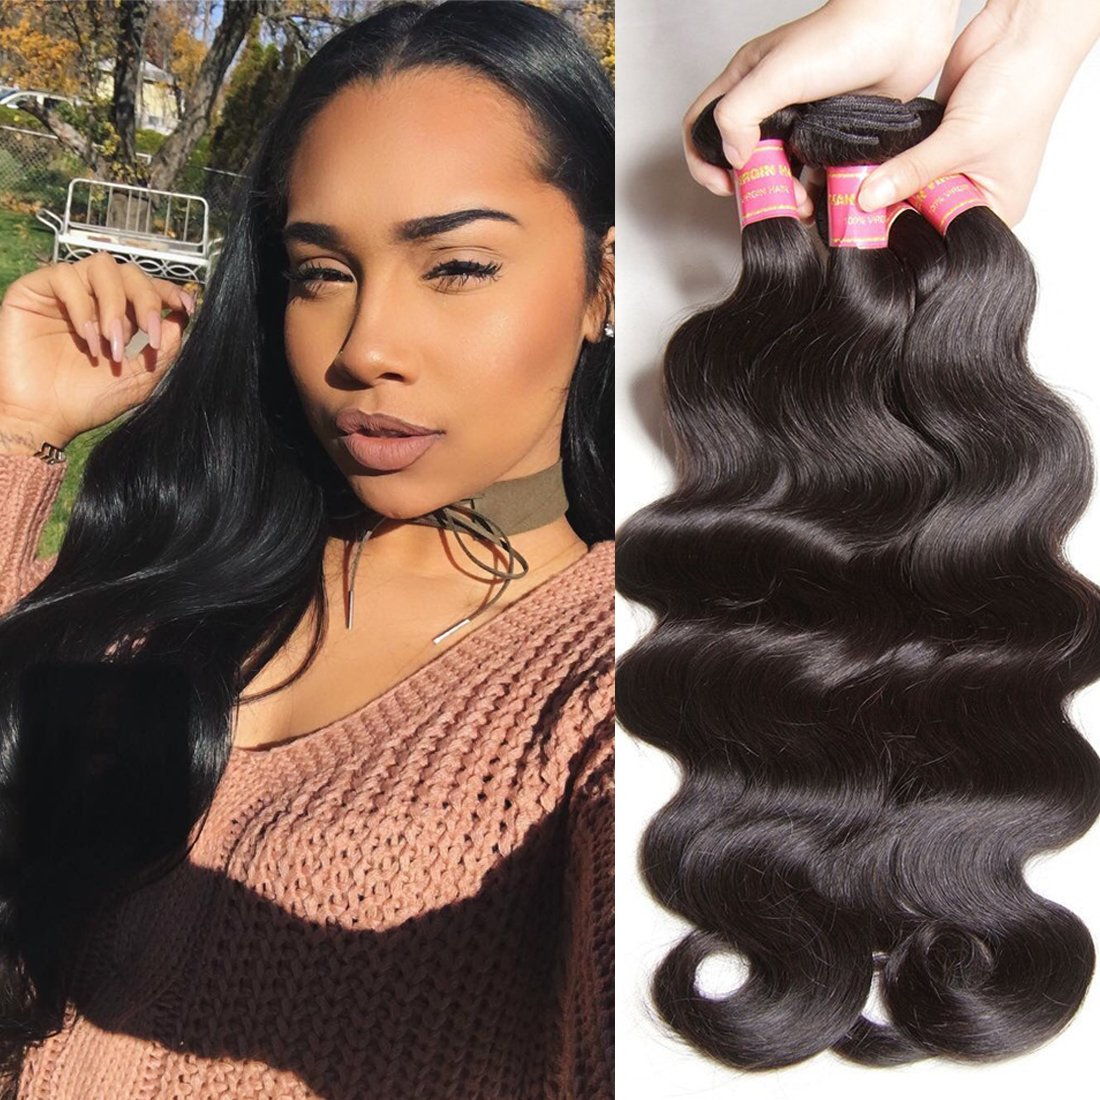 ALI JULIA Hair 8A Grade Malaysian Virgin Body Wave Hair Weft 100% Unprocessed Human Hair Extensions Natural Color Mixed Length (4pc12 14 16 18)